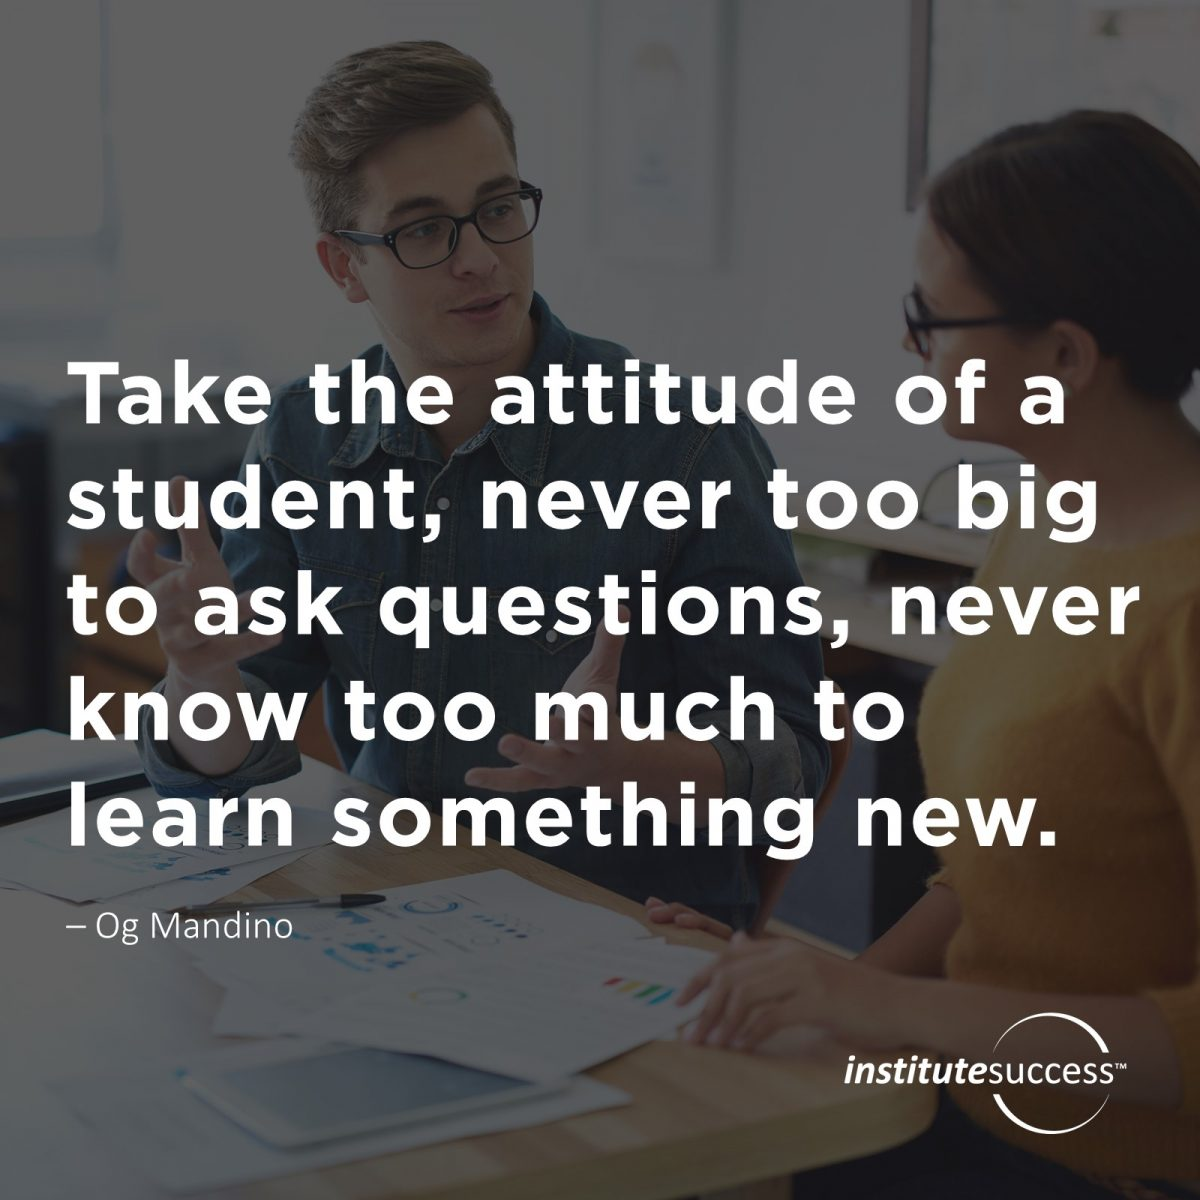 Take the attitude of a student, never too big to ask questions, never know too much to learn something new.  Og Mandino